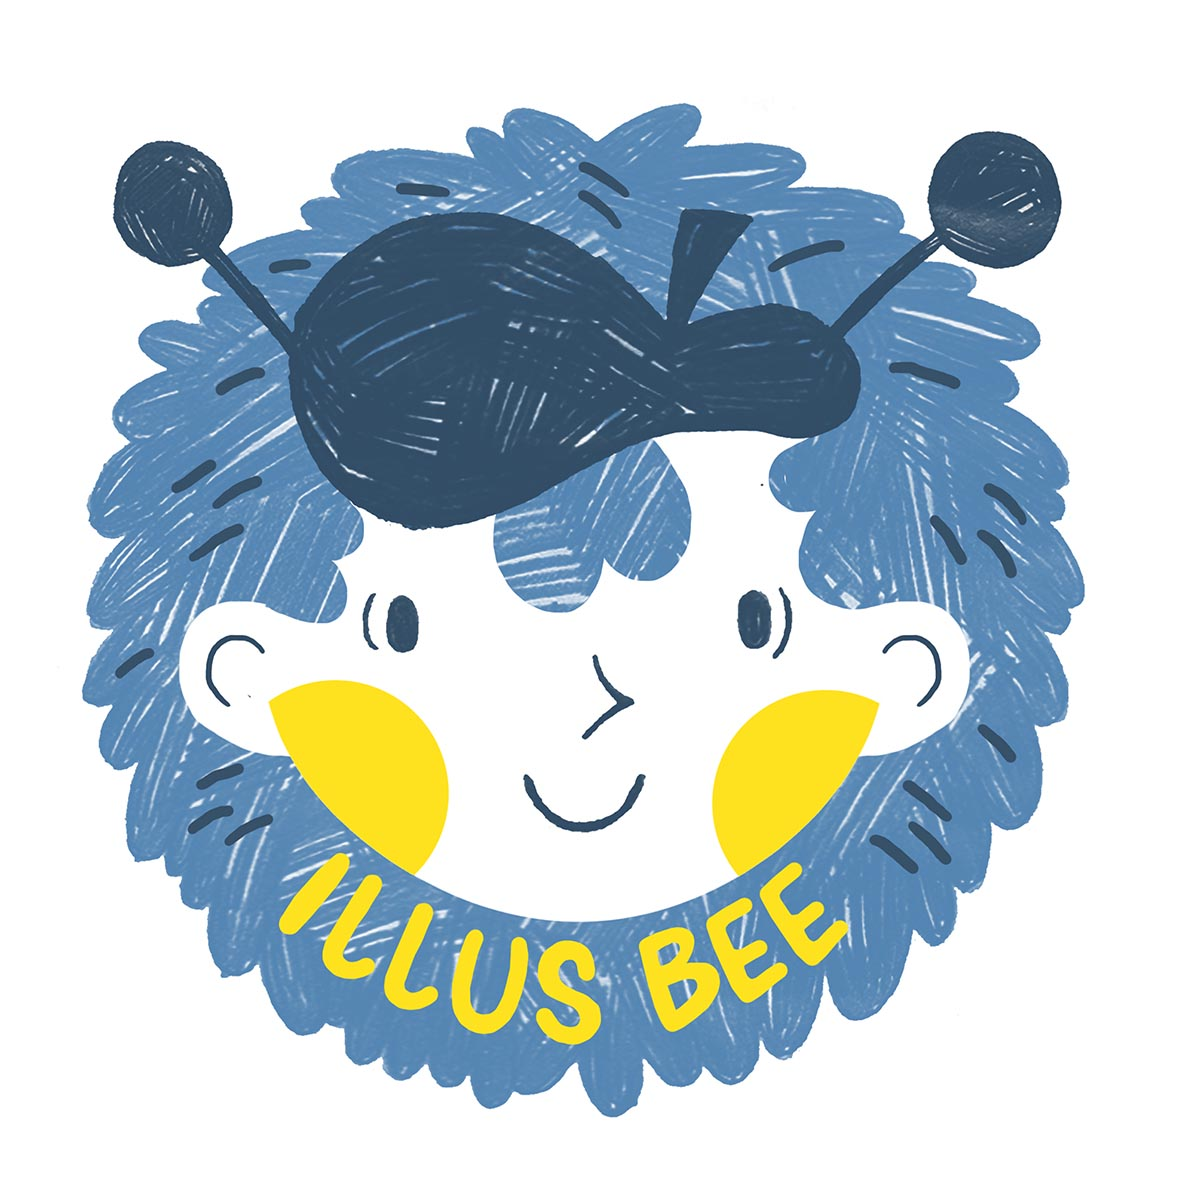 Illus Bee